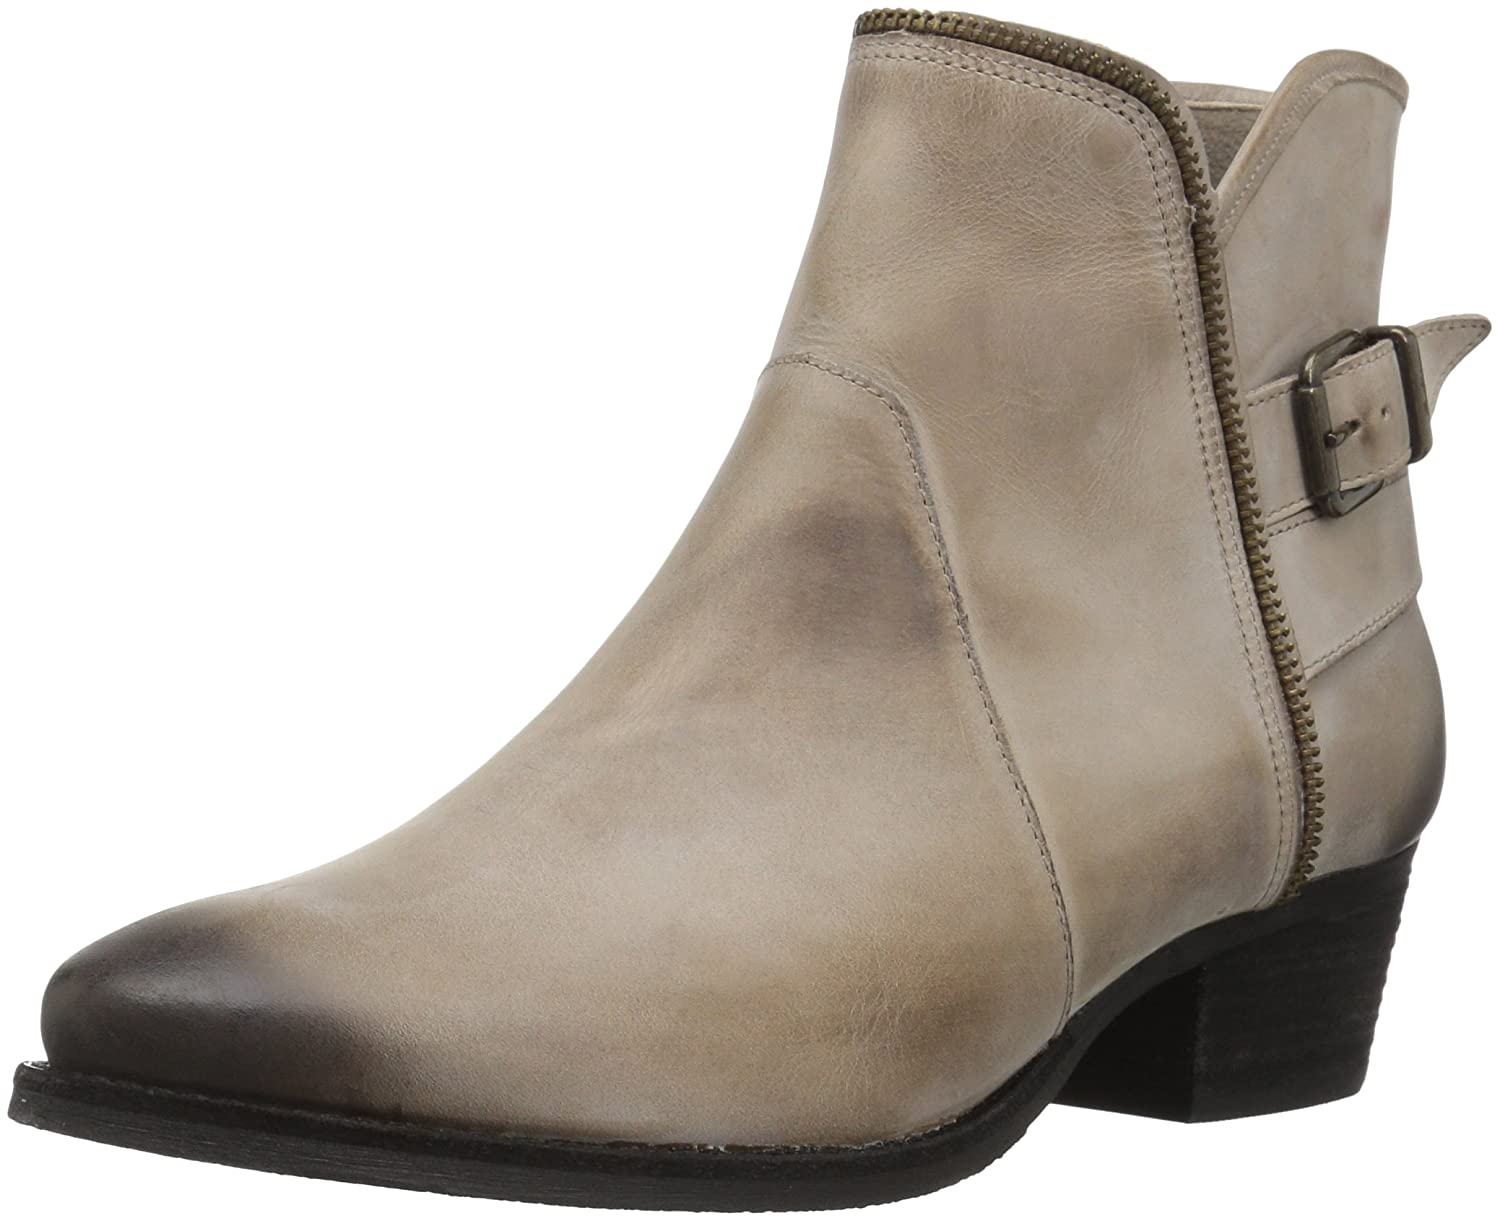 Walking Cradles Women's Gaston Ankle Boot B01BNHJ0S6 8.5 XW US|Sage Urban